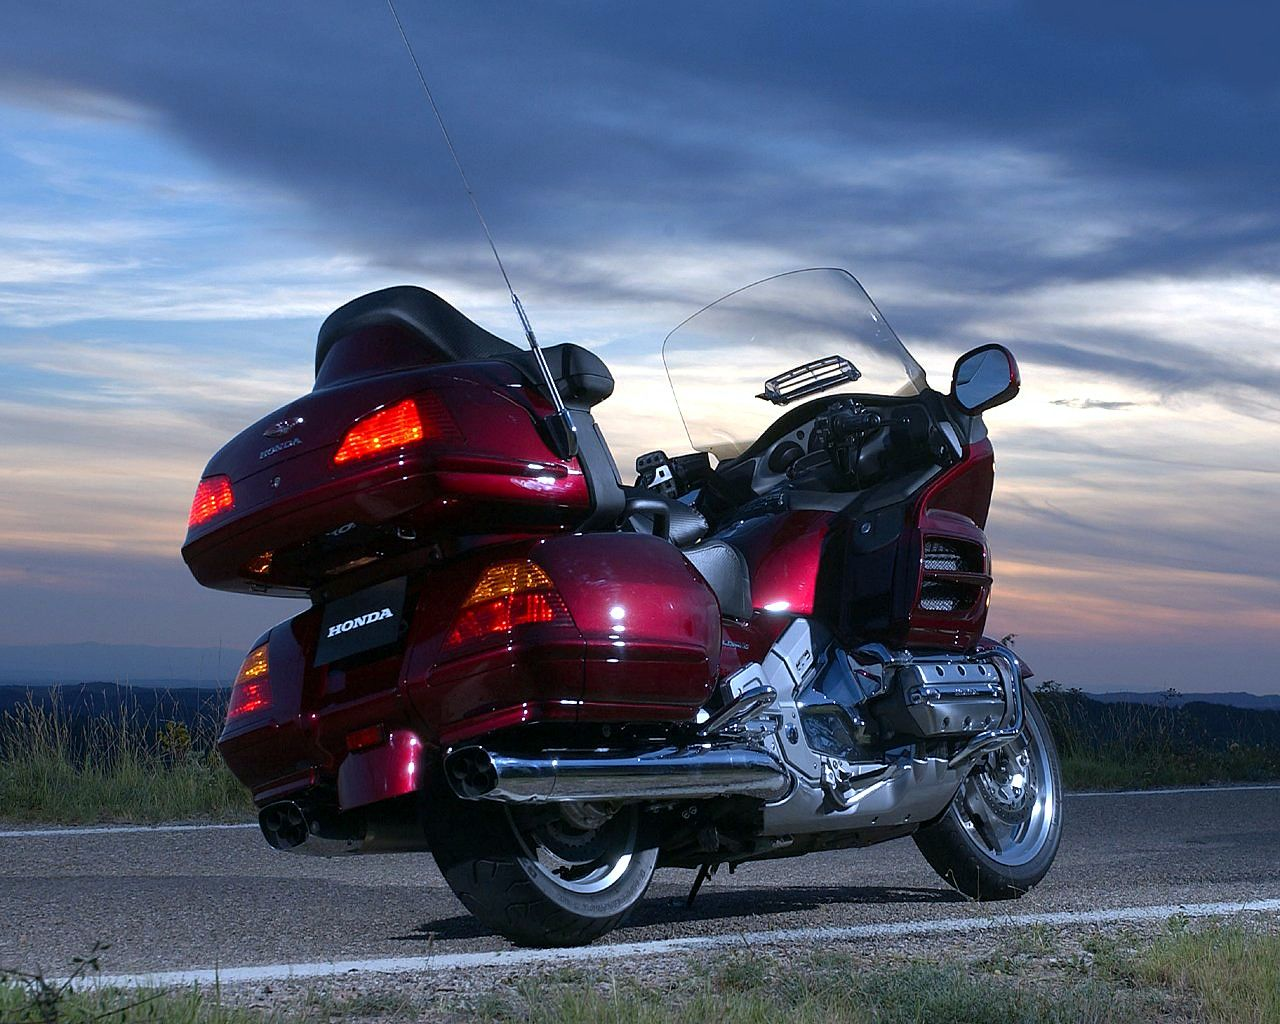 Goldwing Motorcycle Wallpapers